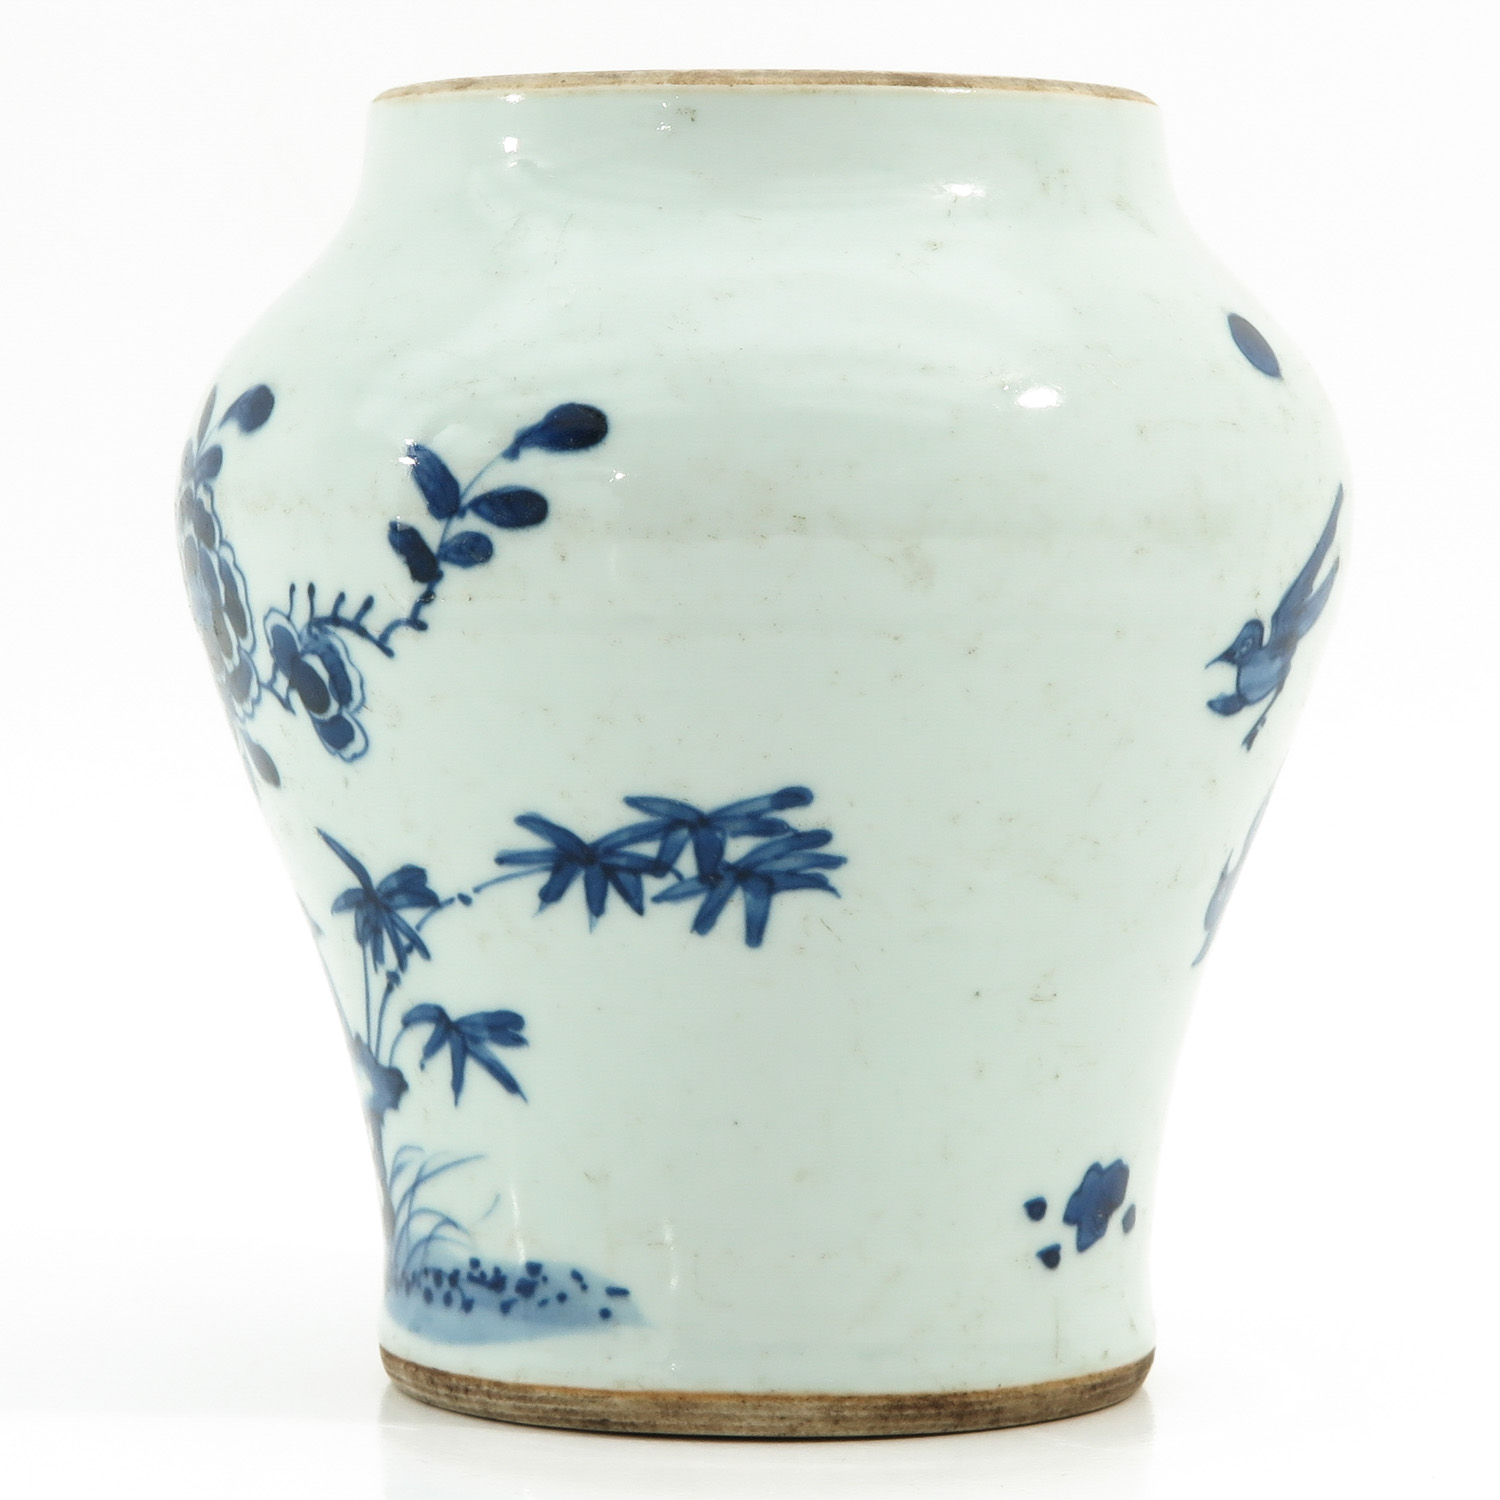 A Blue and White Vase - Image 3 of 9